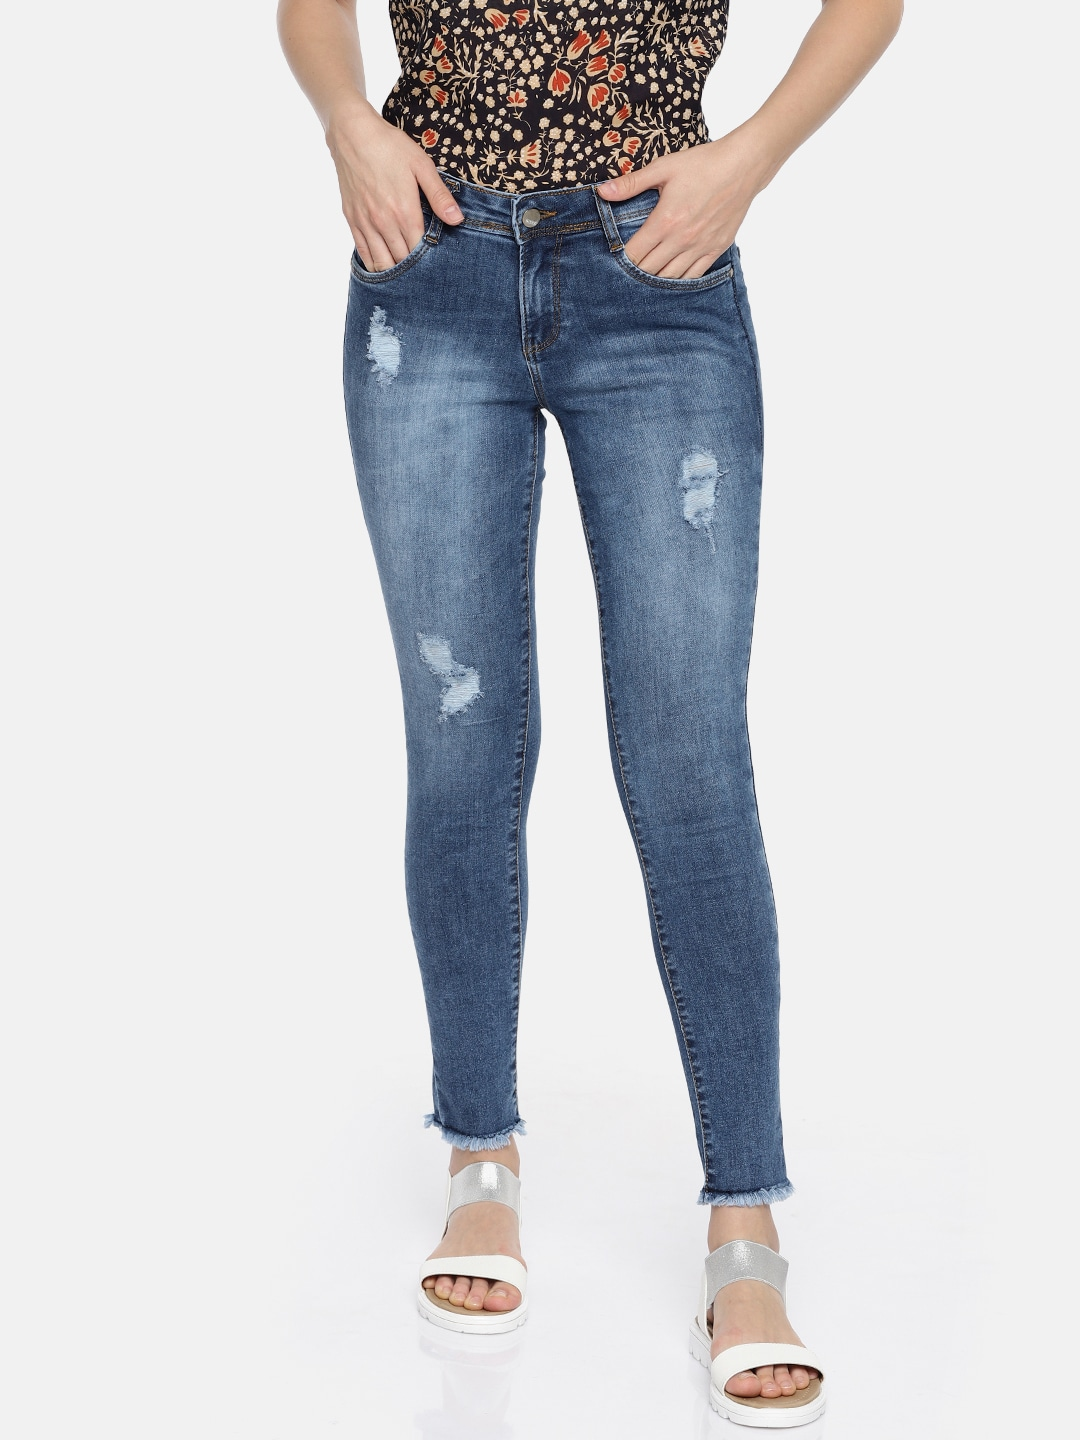 8e3850626f Women No Wash Jeans - Buy Women No Wash Jeans online in India